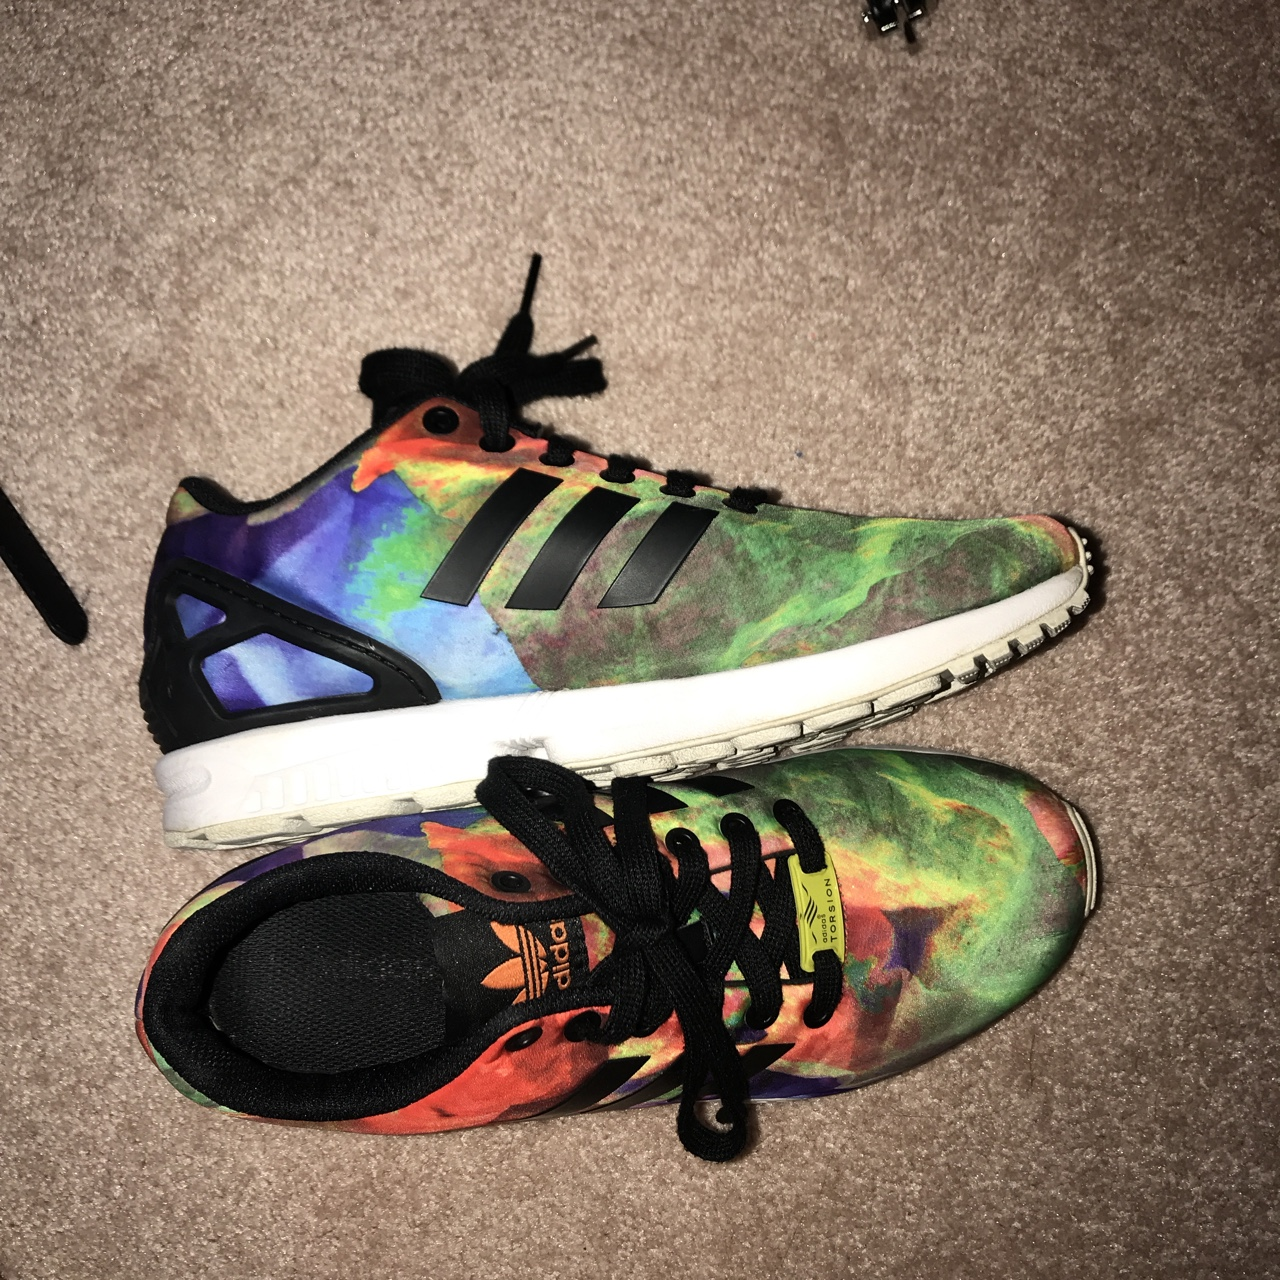 ADIDAS shoes zxflux colorful rainbow shoes ! look so...